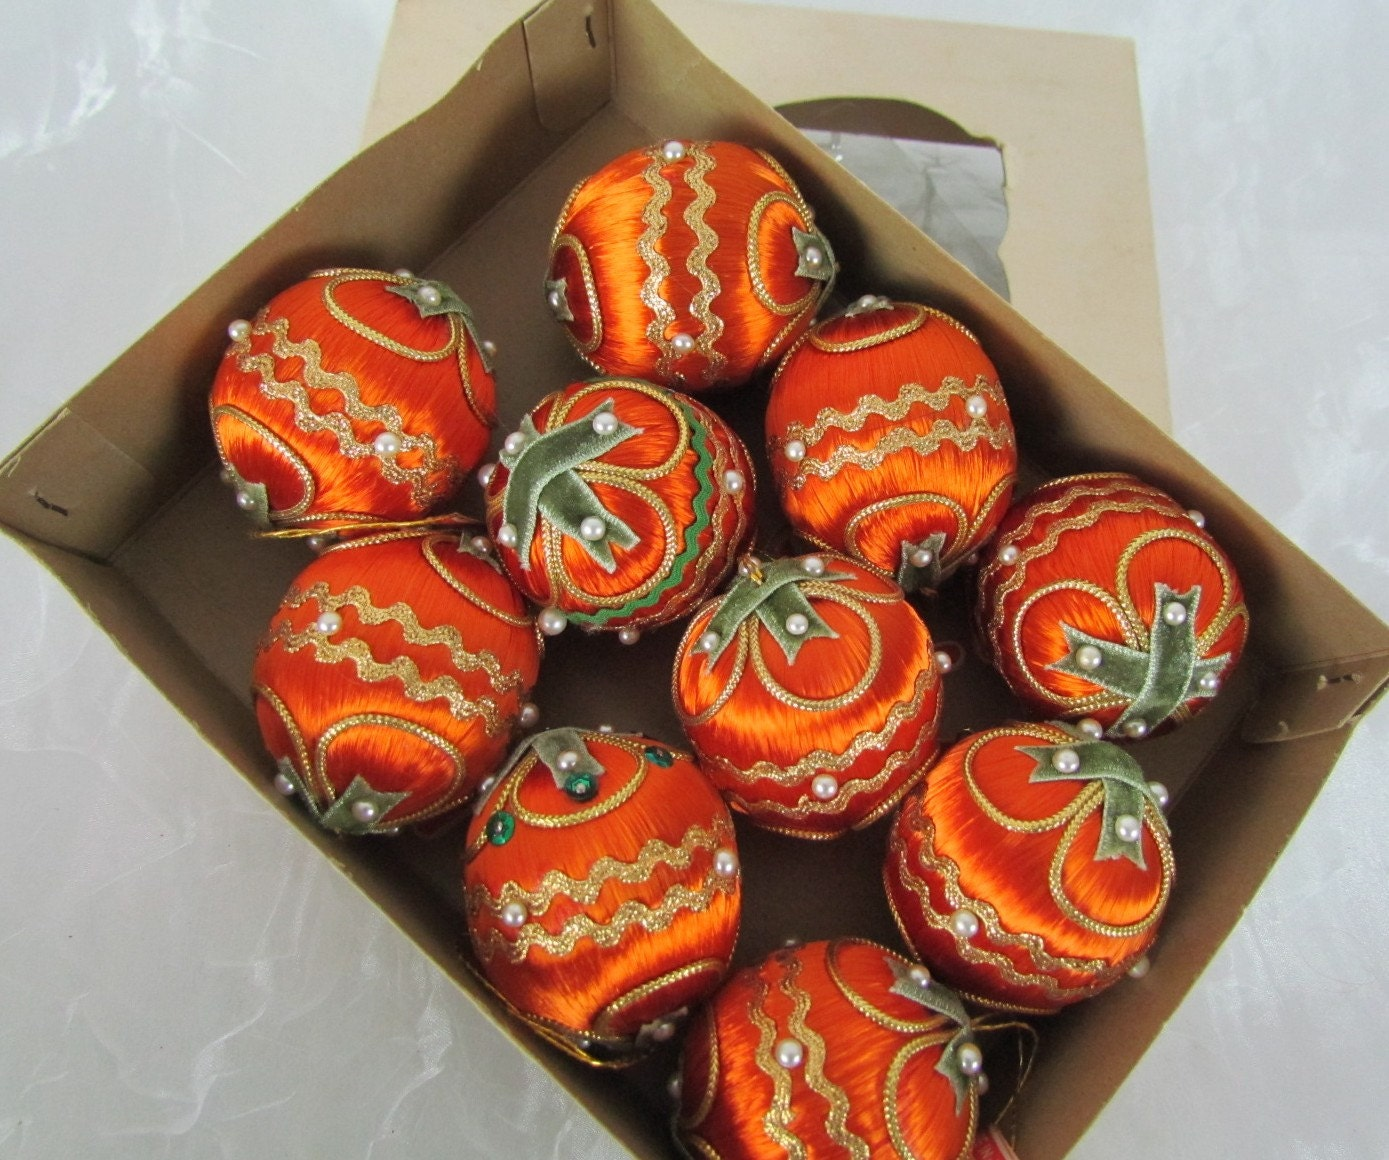 Christmas Decorations With Orange: Unavailable Listing On Etsy